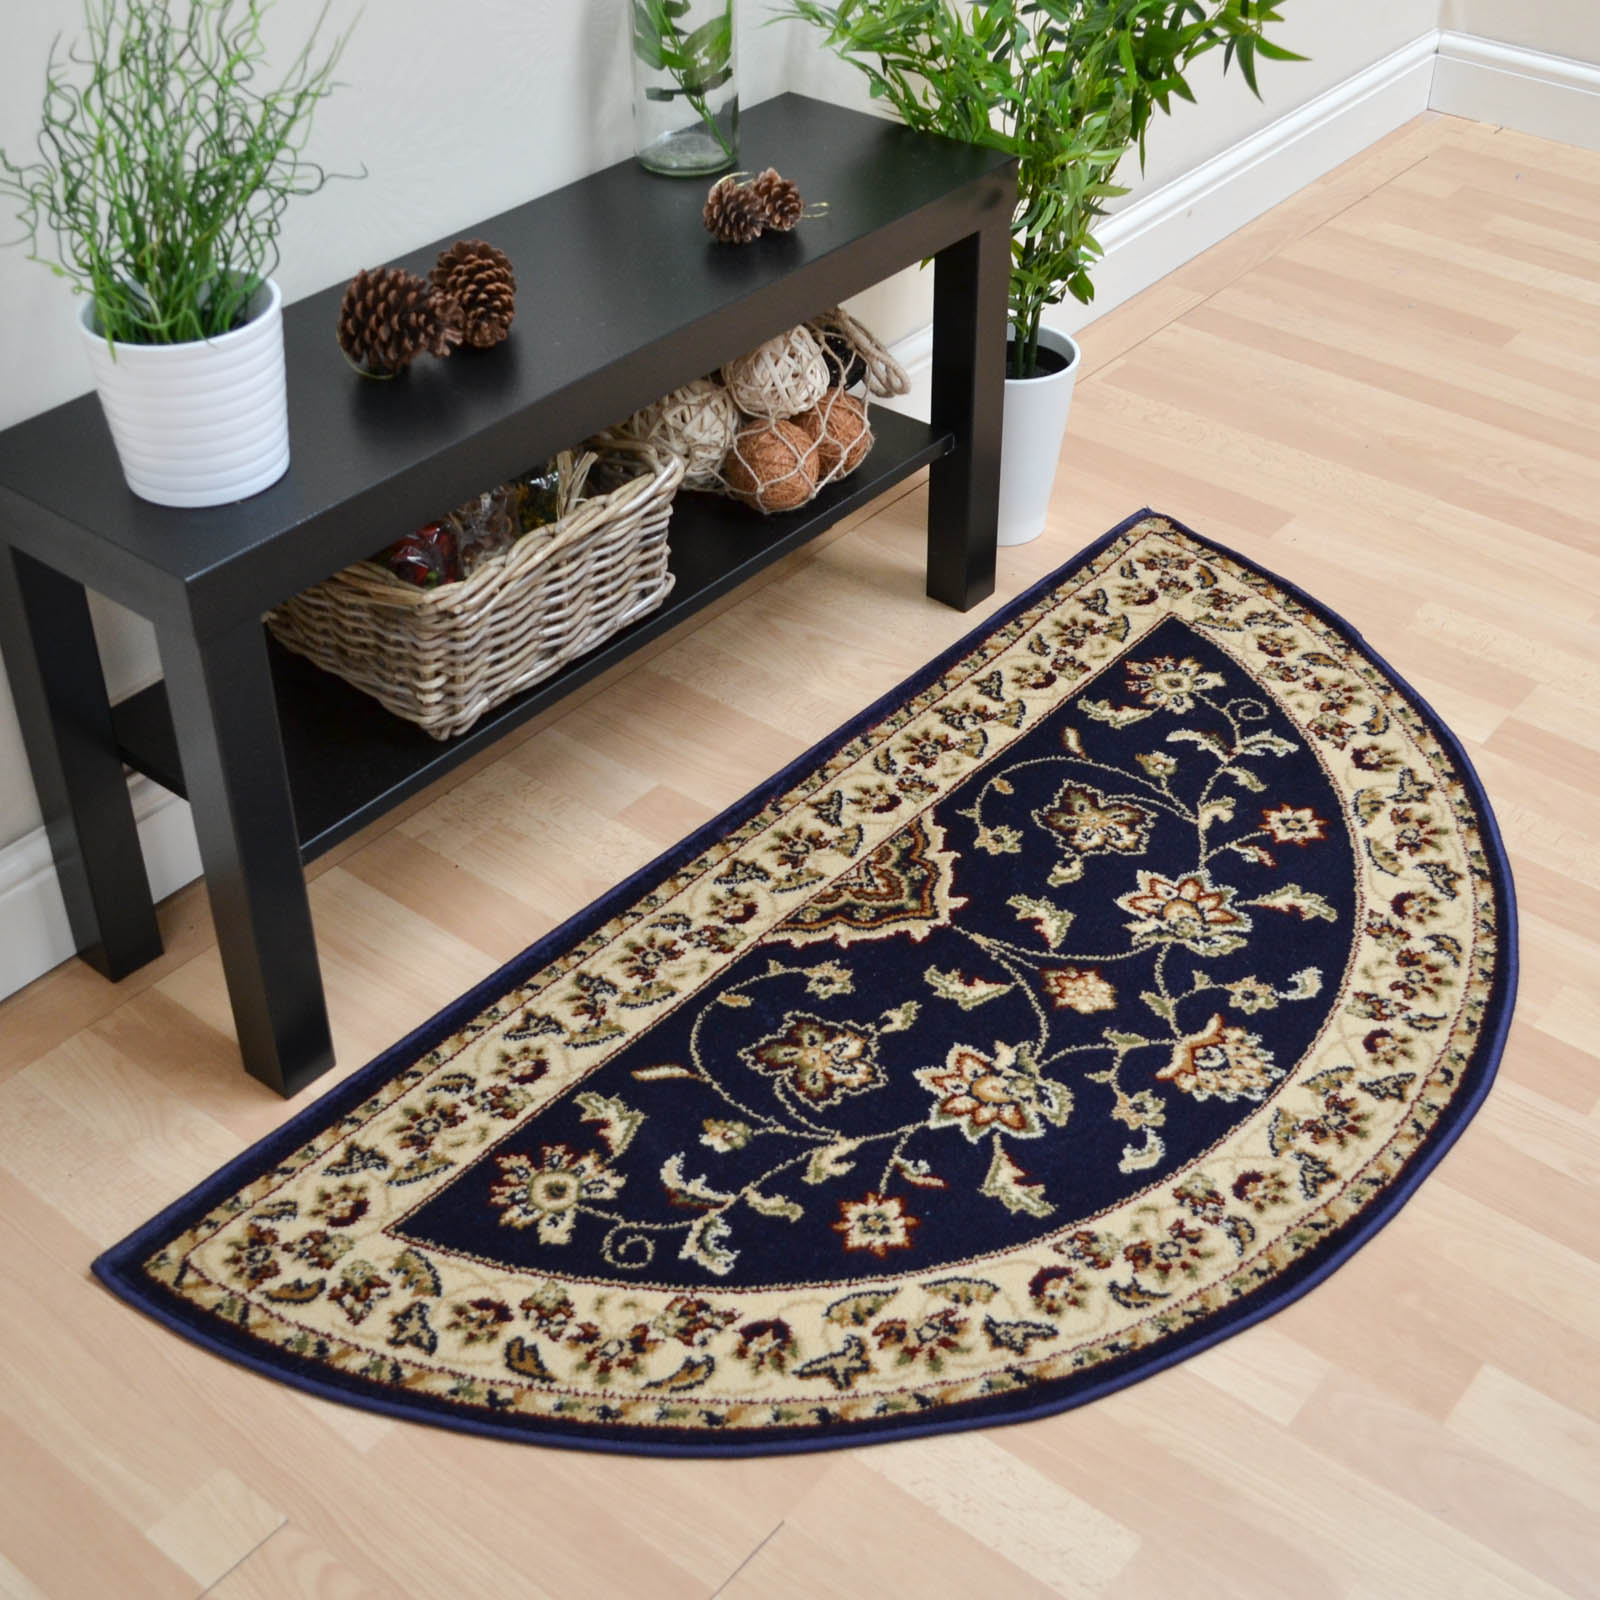 Sherborne Traditional Half Moon Rugs in Navy Blue